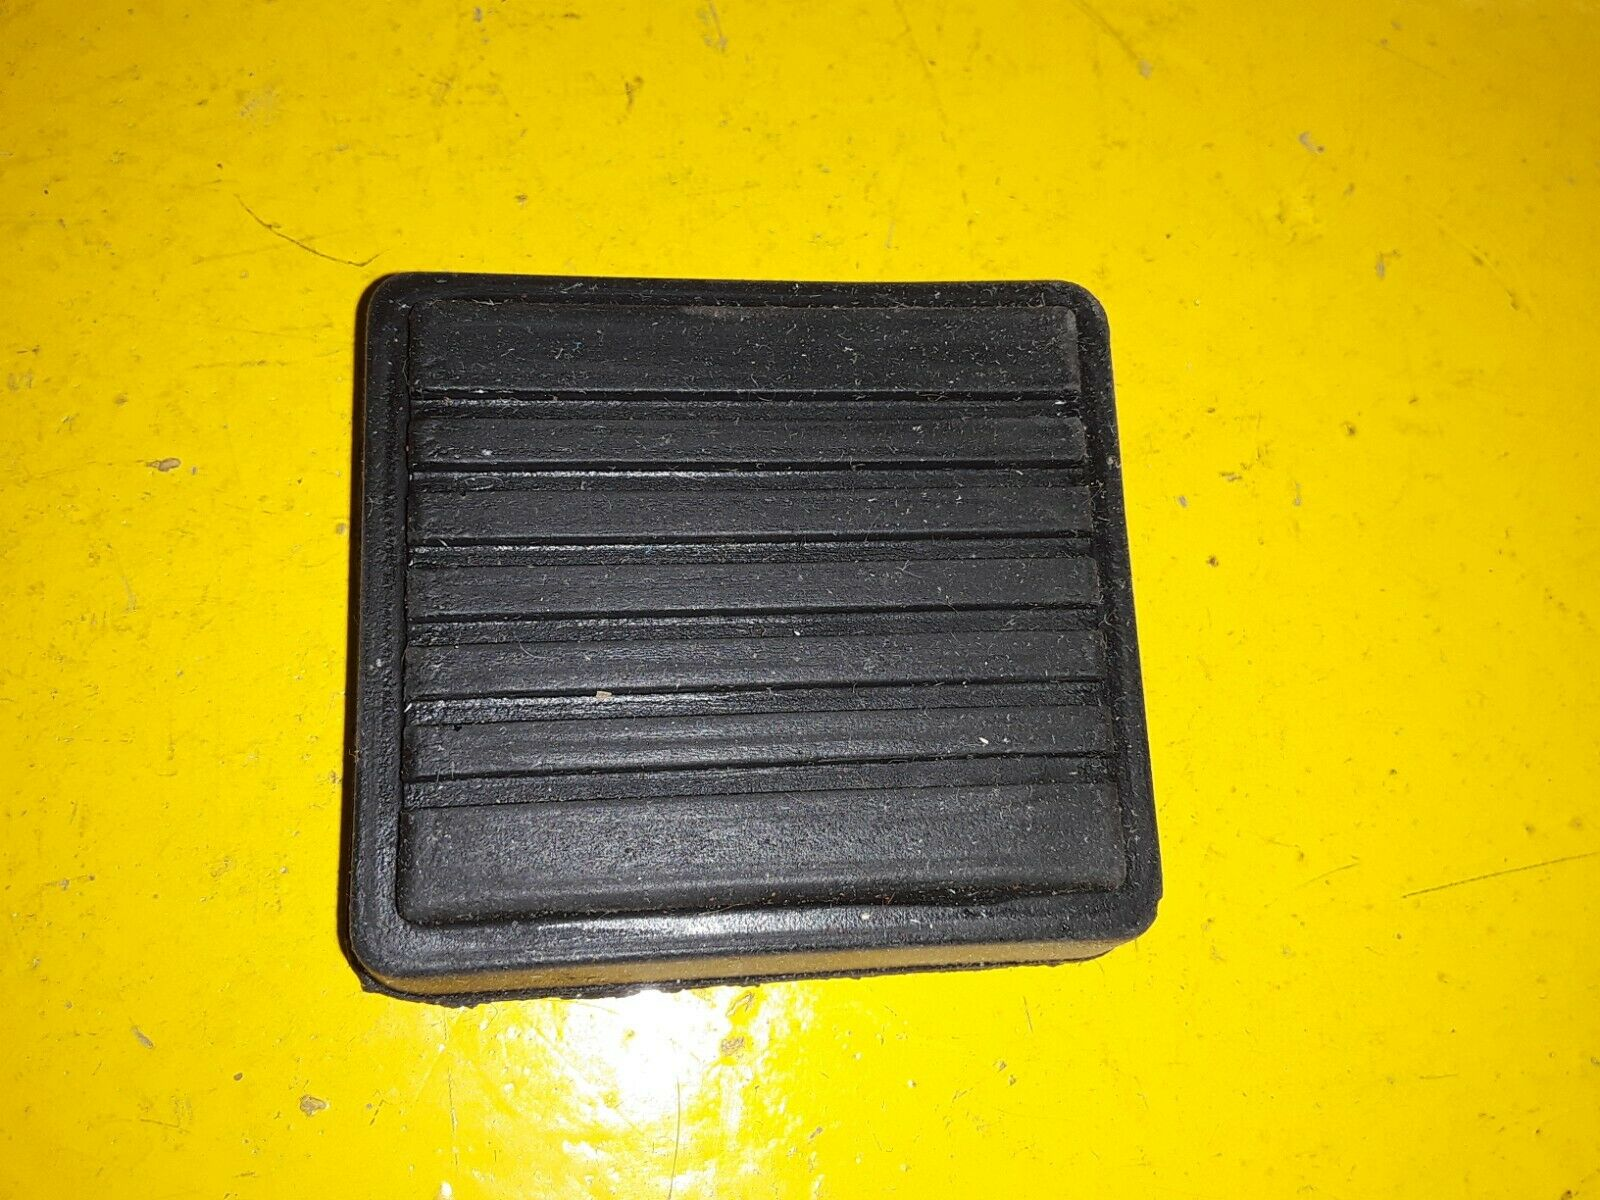 1966-1971 FORD FAIRLANE TORINO FALCON PARKING BRAKE PEDAL PAD C6OZ-2454-A C6OZ-2454-A / C60Z-2454-A